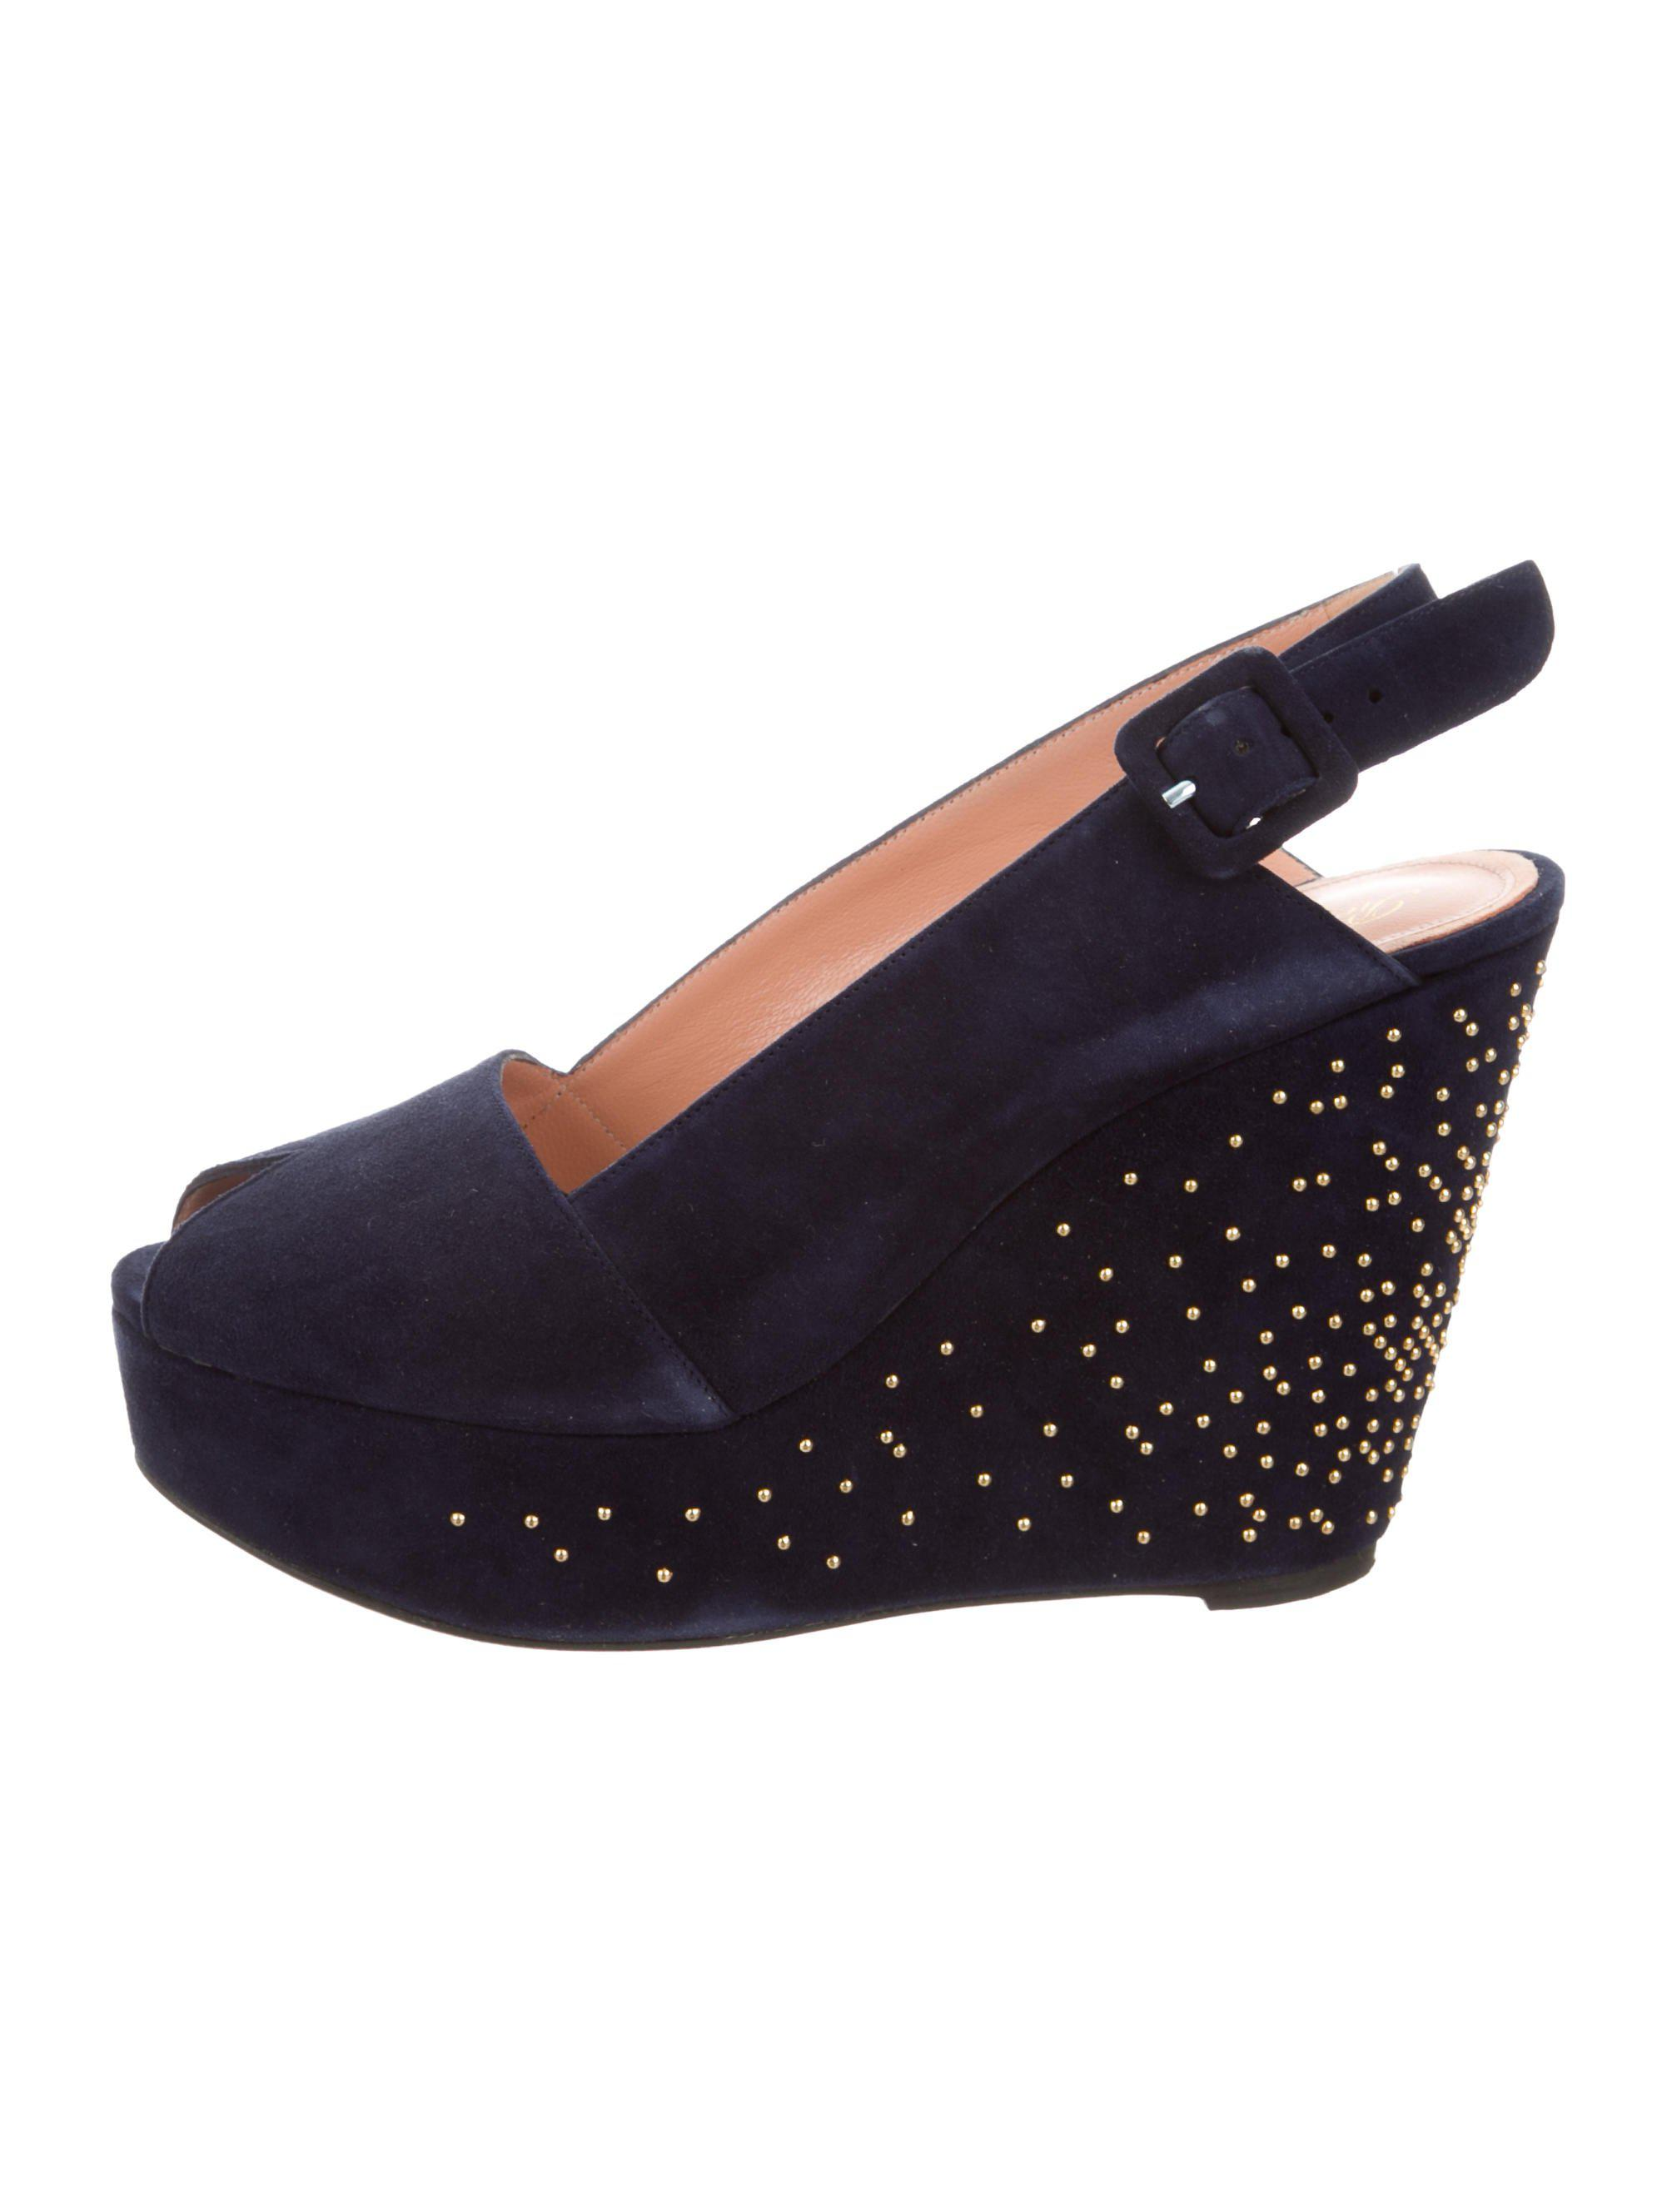 discount purchase discount amazon Robert Clergerie Embellished Slingback Wedges purchase sale online low price fee shipping cheap price m95JPur6